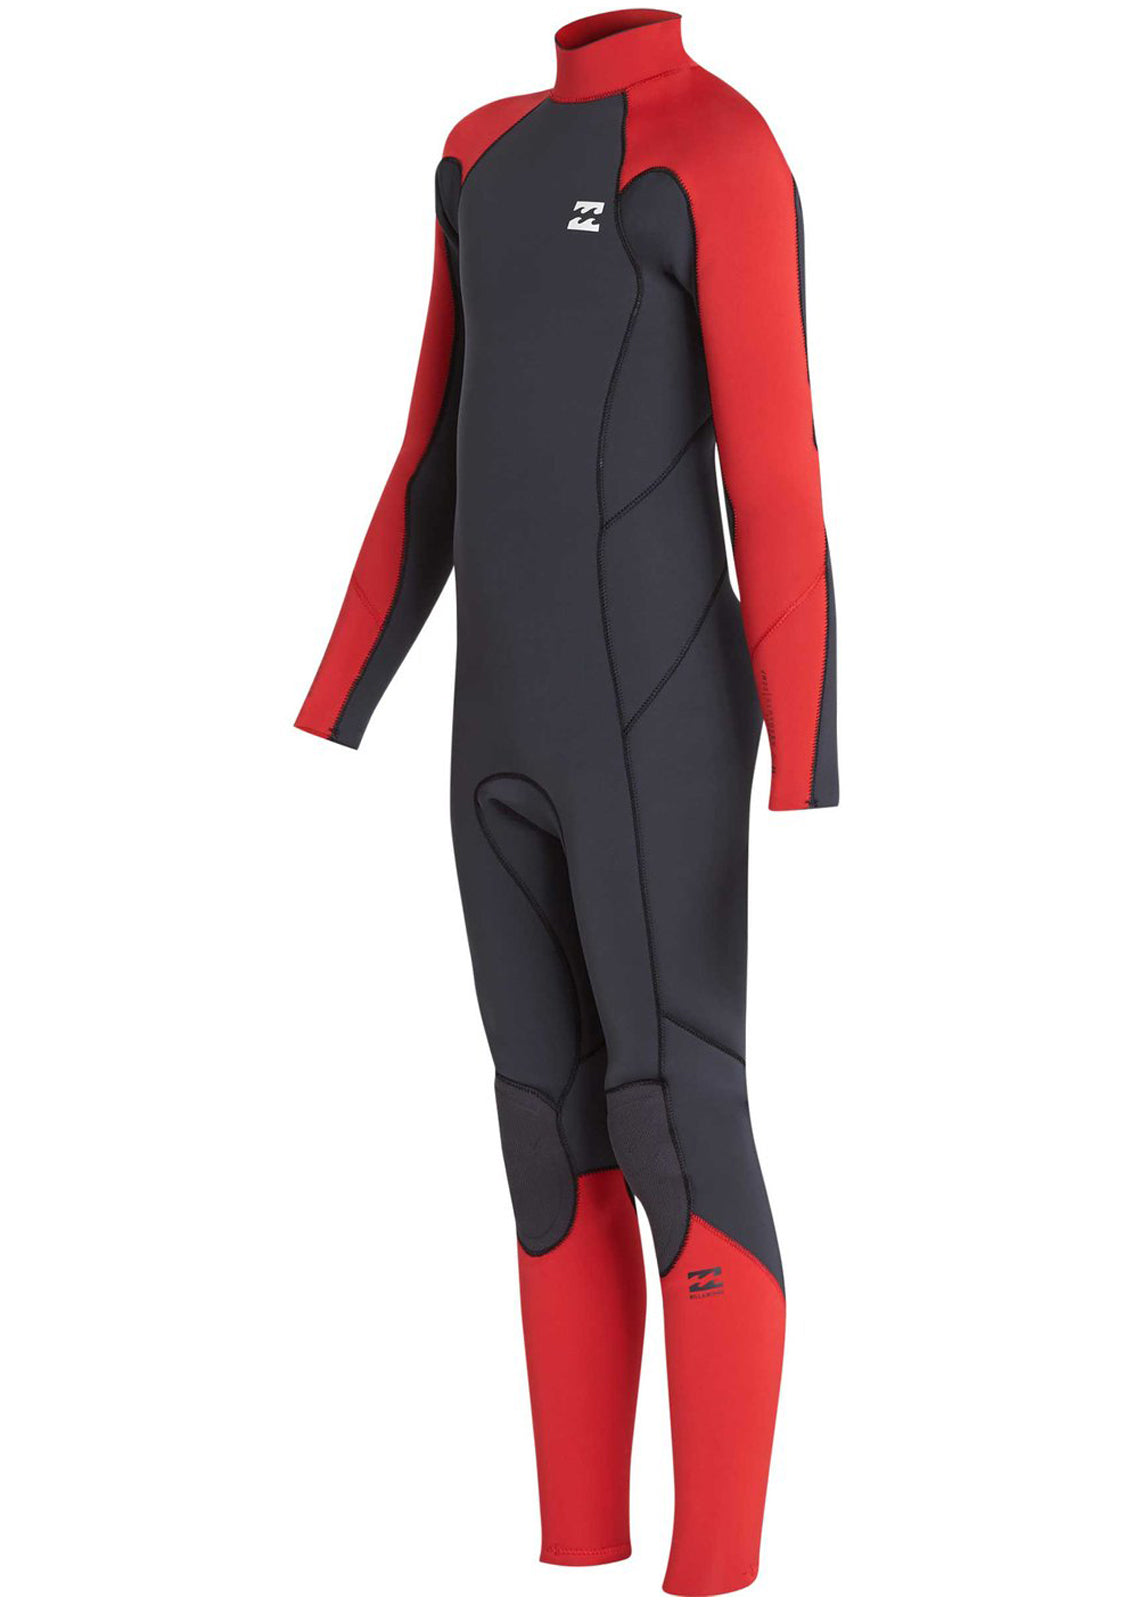 Billabong Boys 302 Furnace Absolute Back Zip GBS Fullsuit